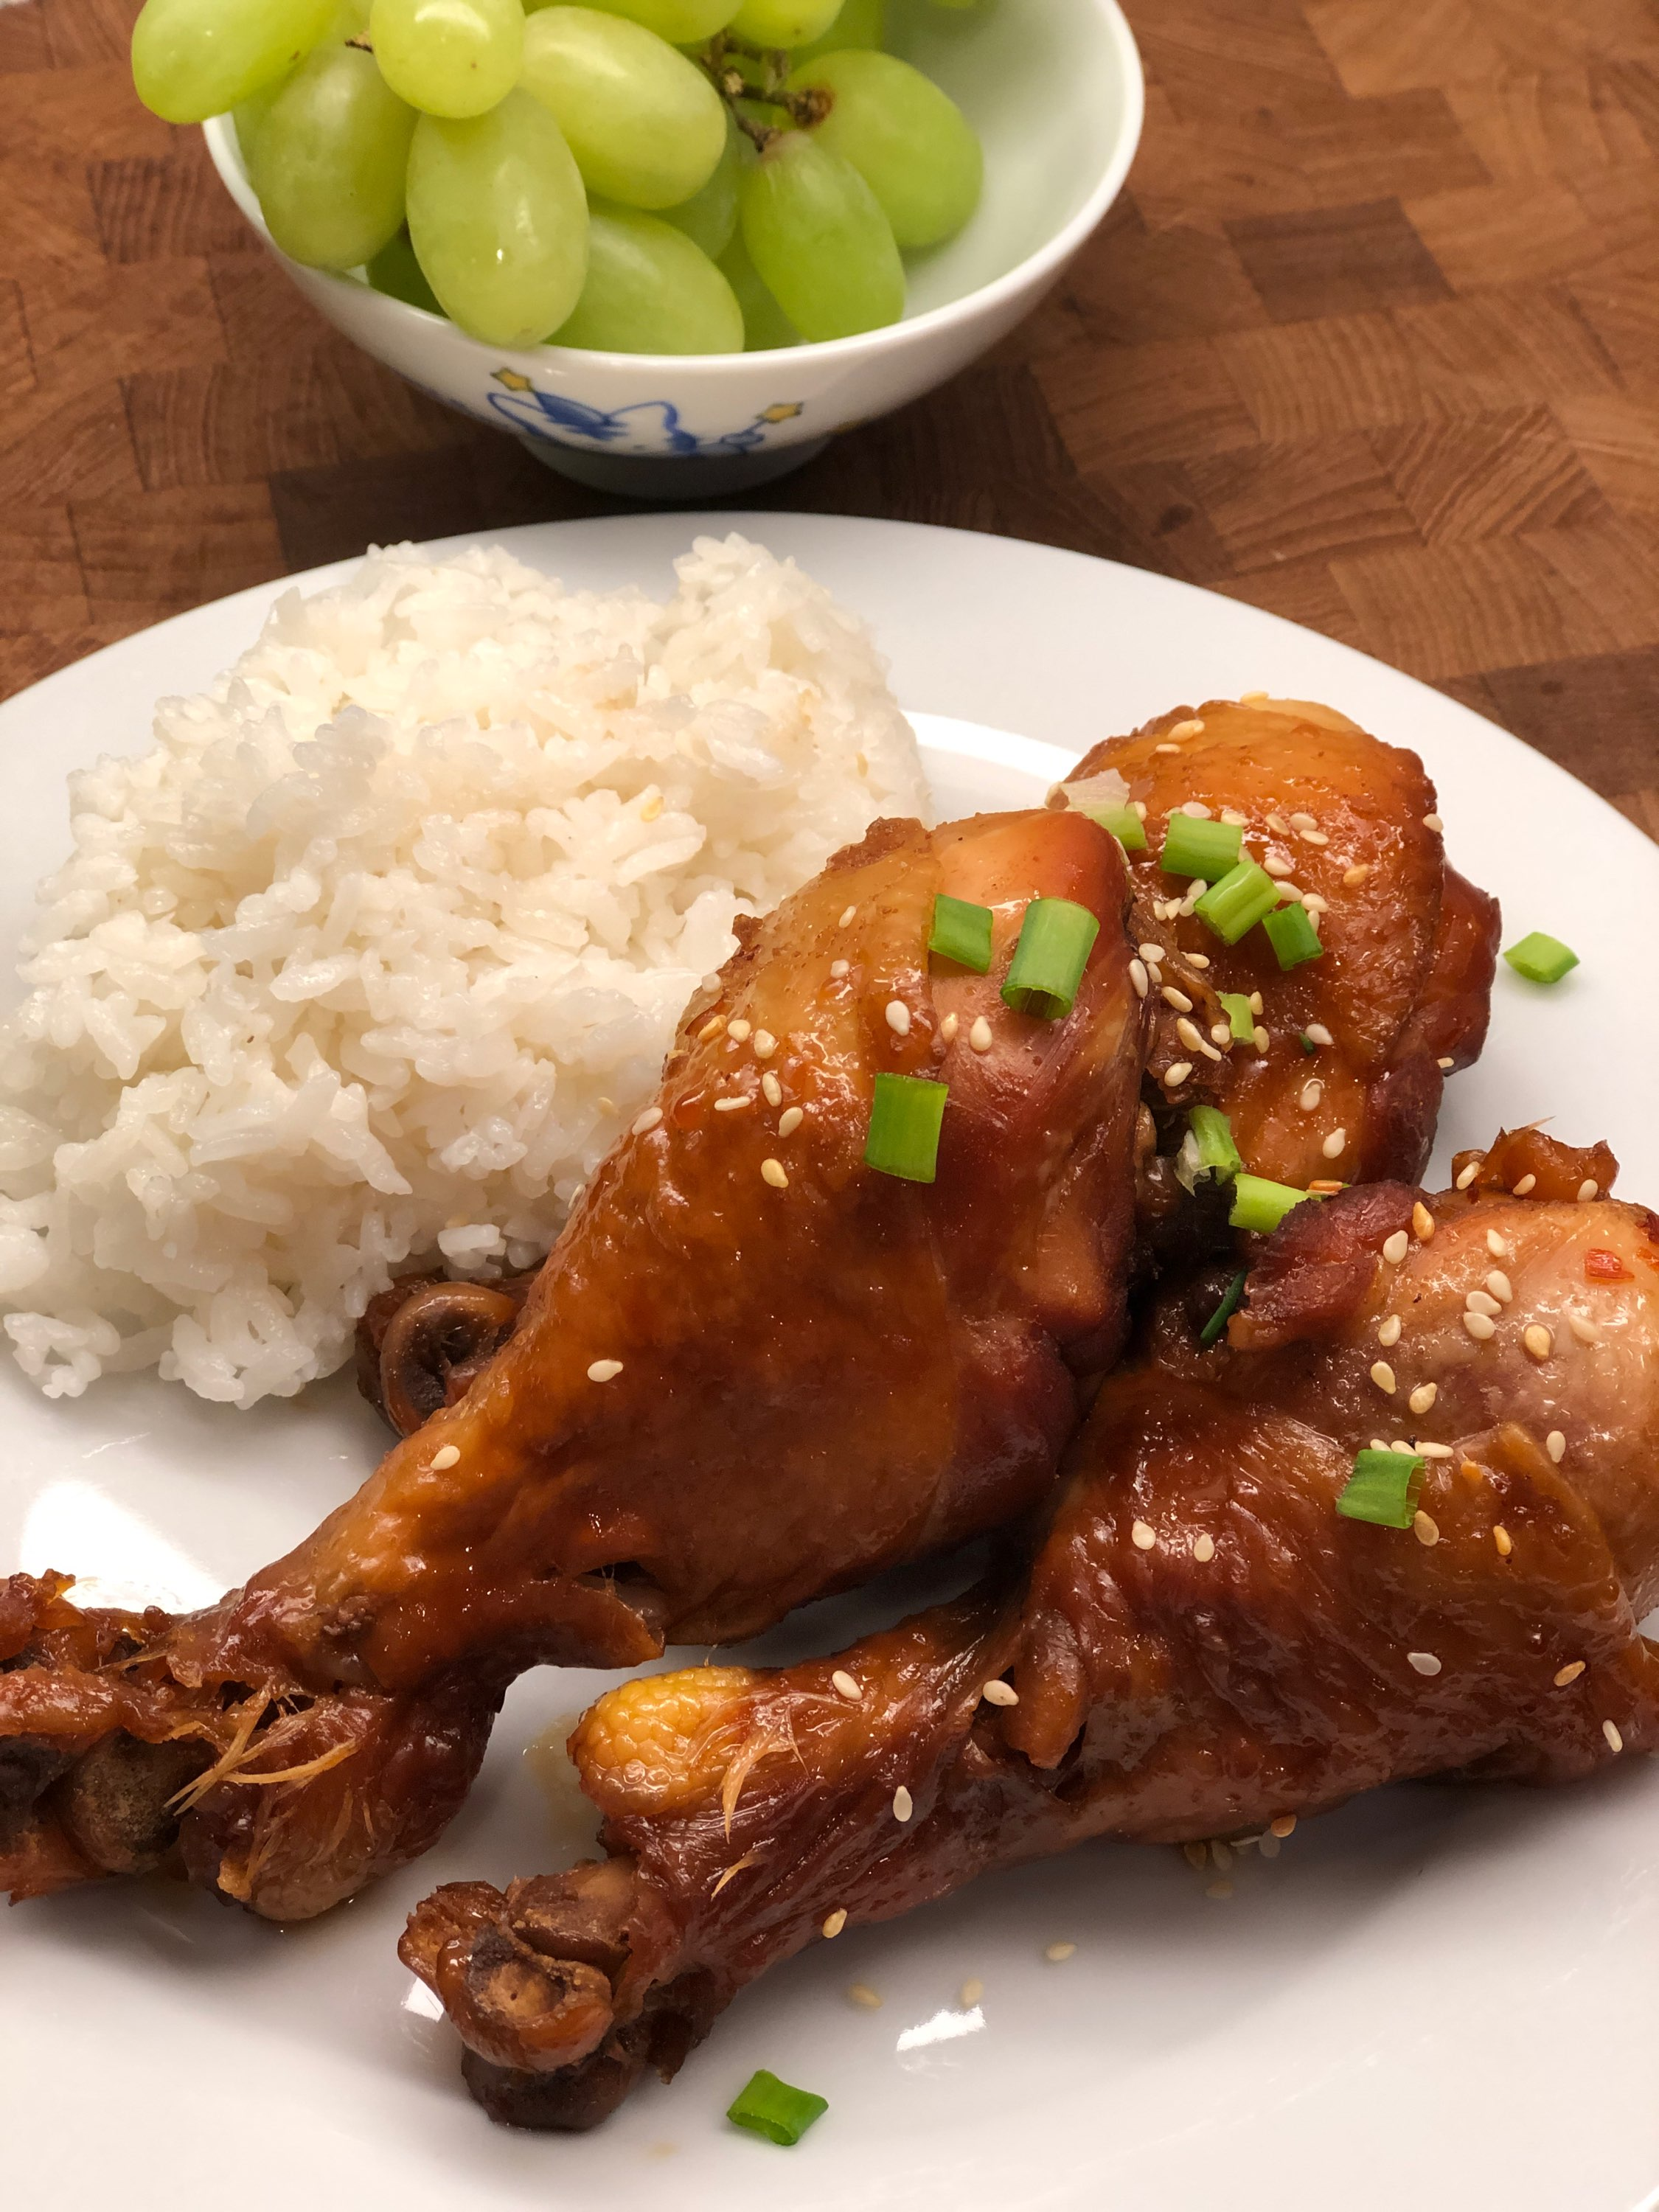 """""""Bring the islands home to your family with this very Hawaiian dish,"""" says Diana71. """"The flavor is authentic and super easy with the Instant Pot. Serve with rice because the sauce is fantastic over it!"""""""